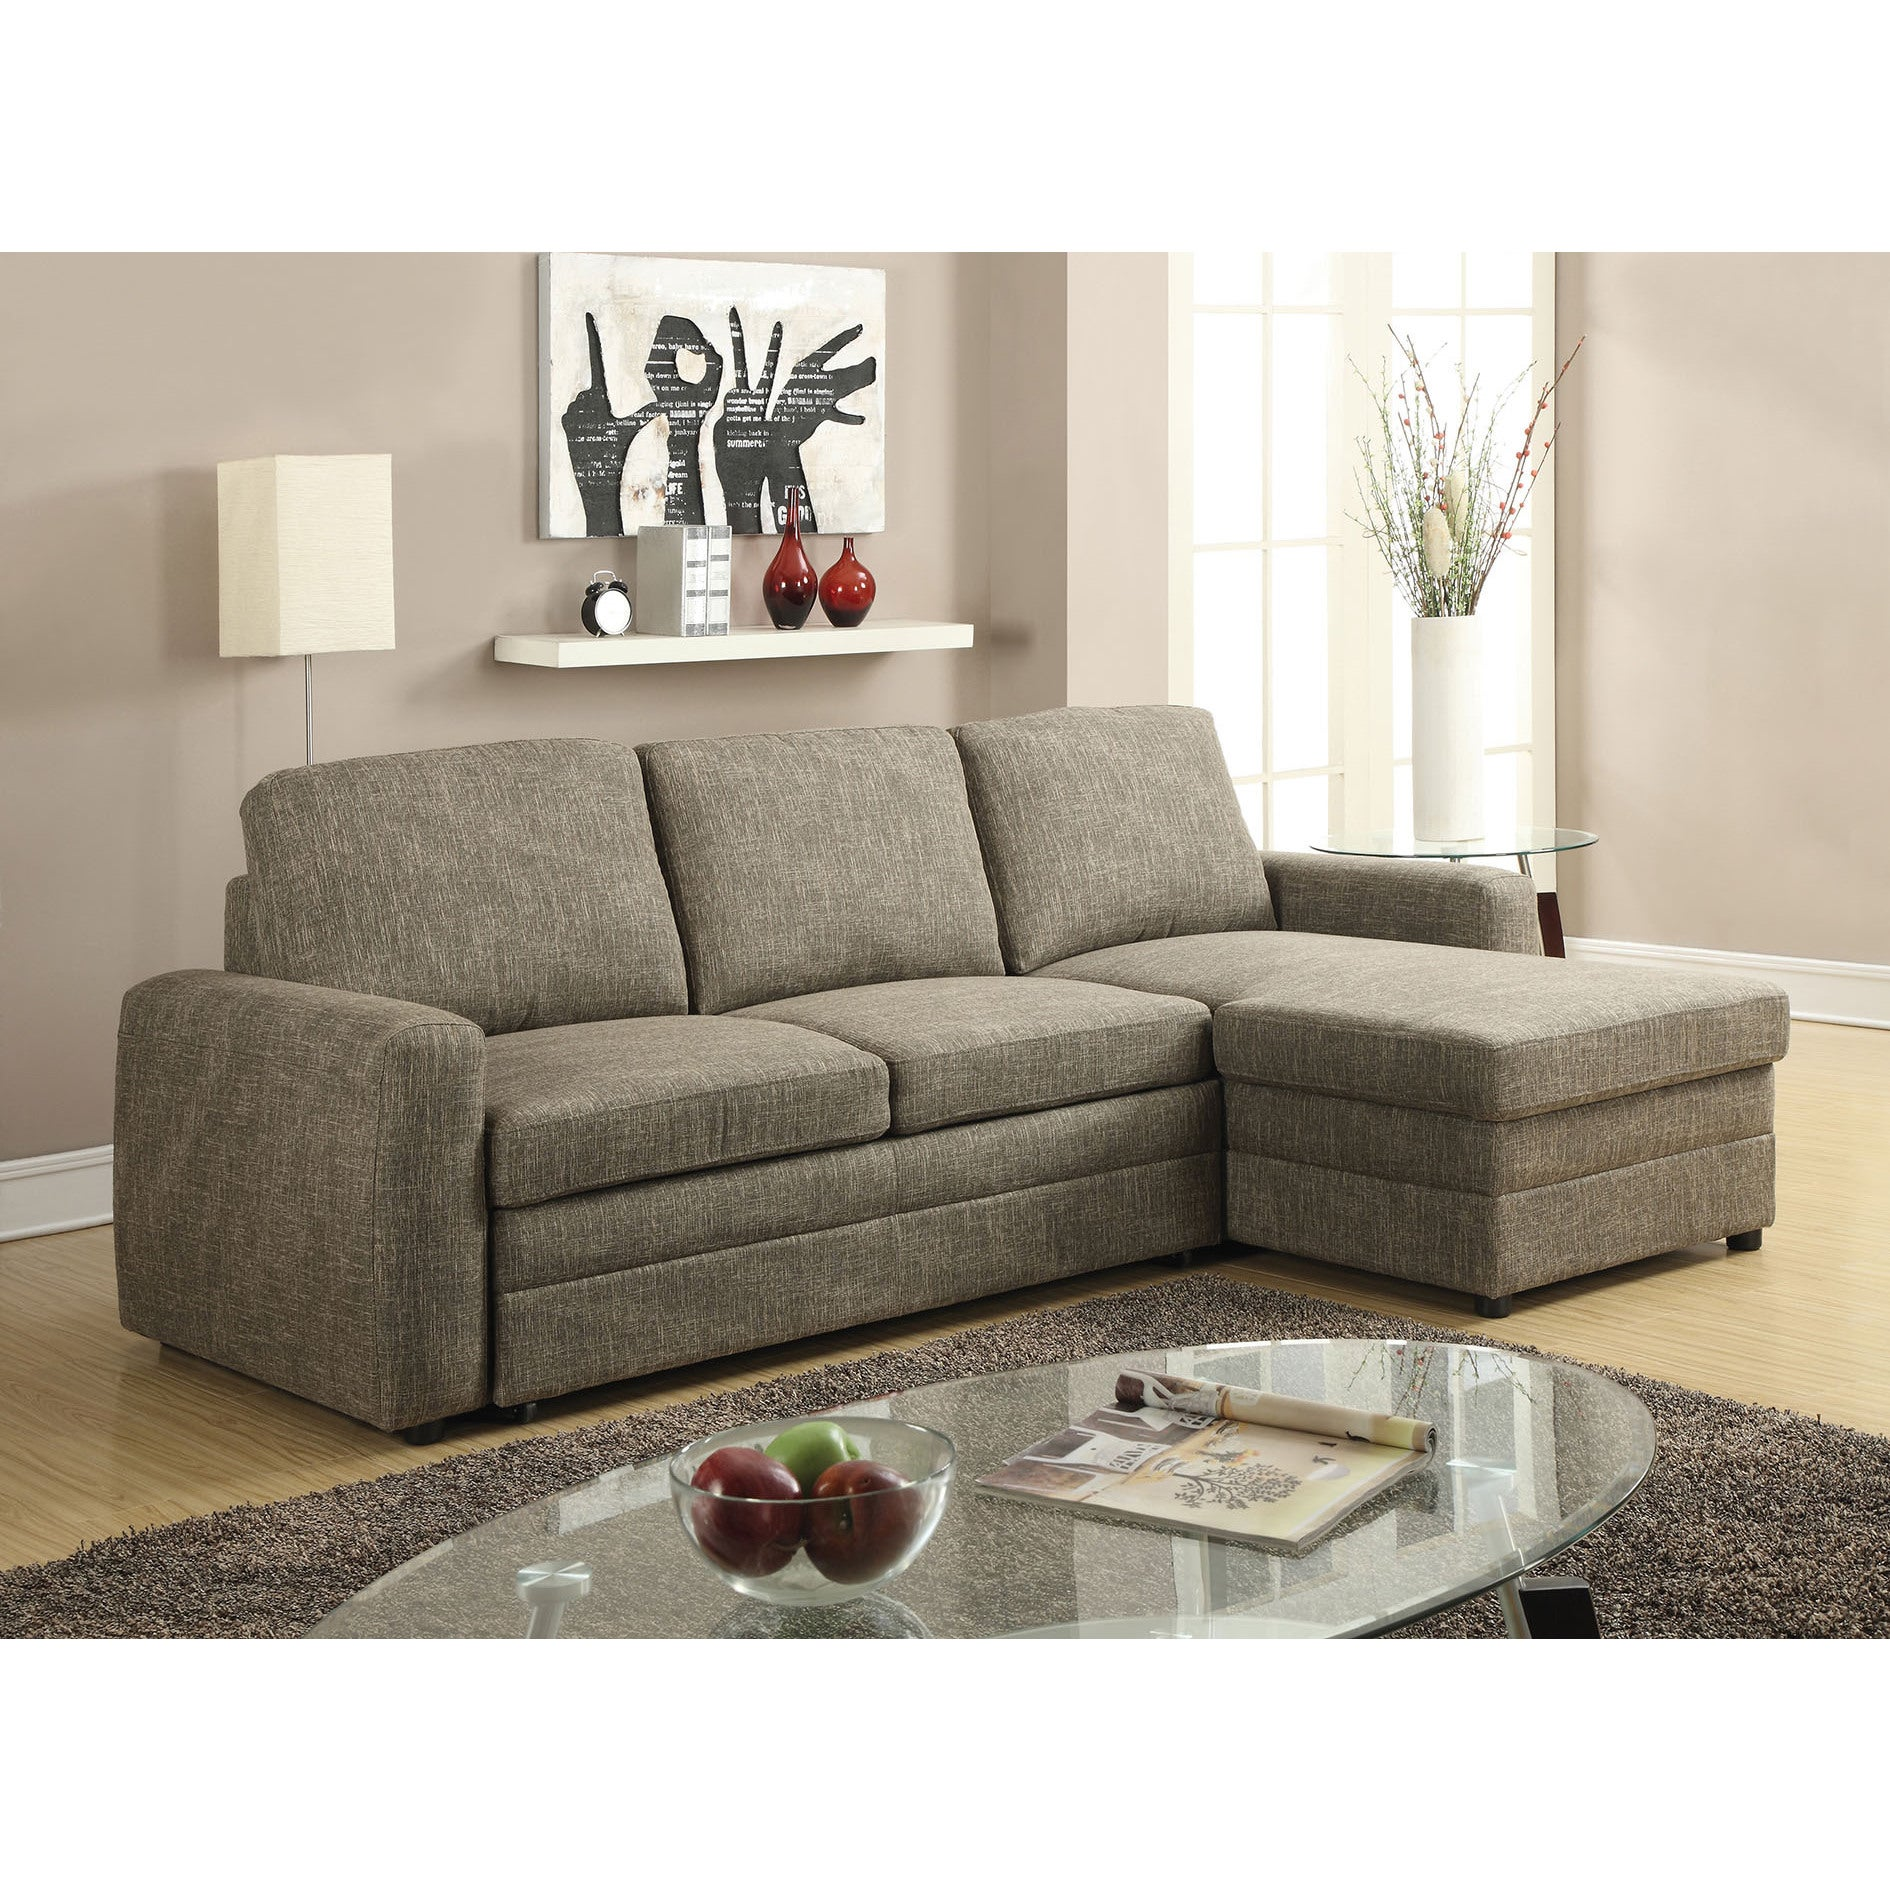 ACME Derwyn Sectional Sofa with Pull-Out Bed, Light Brown...